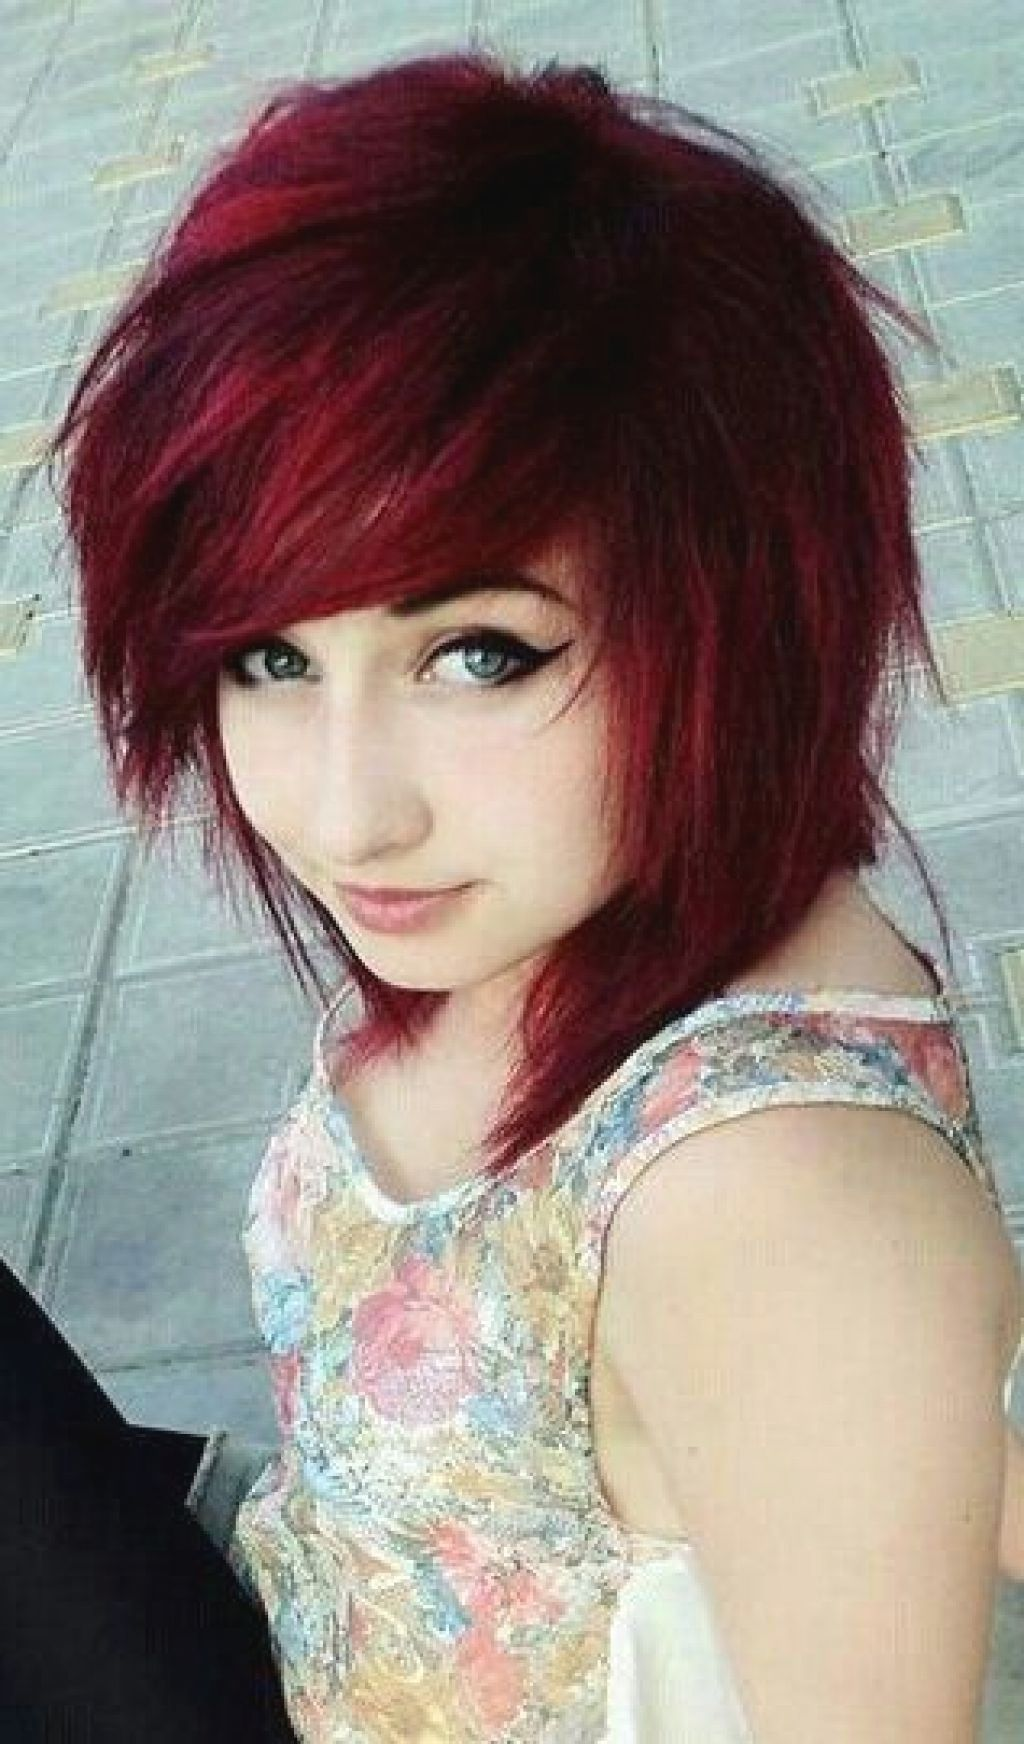 196 + Emo Hairstyles For Short Hair | Emo Girl Hairstyles